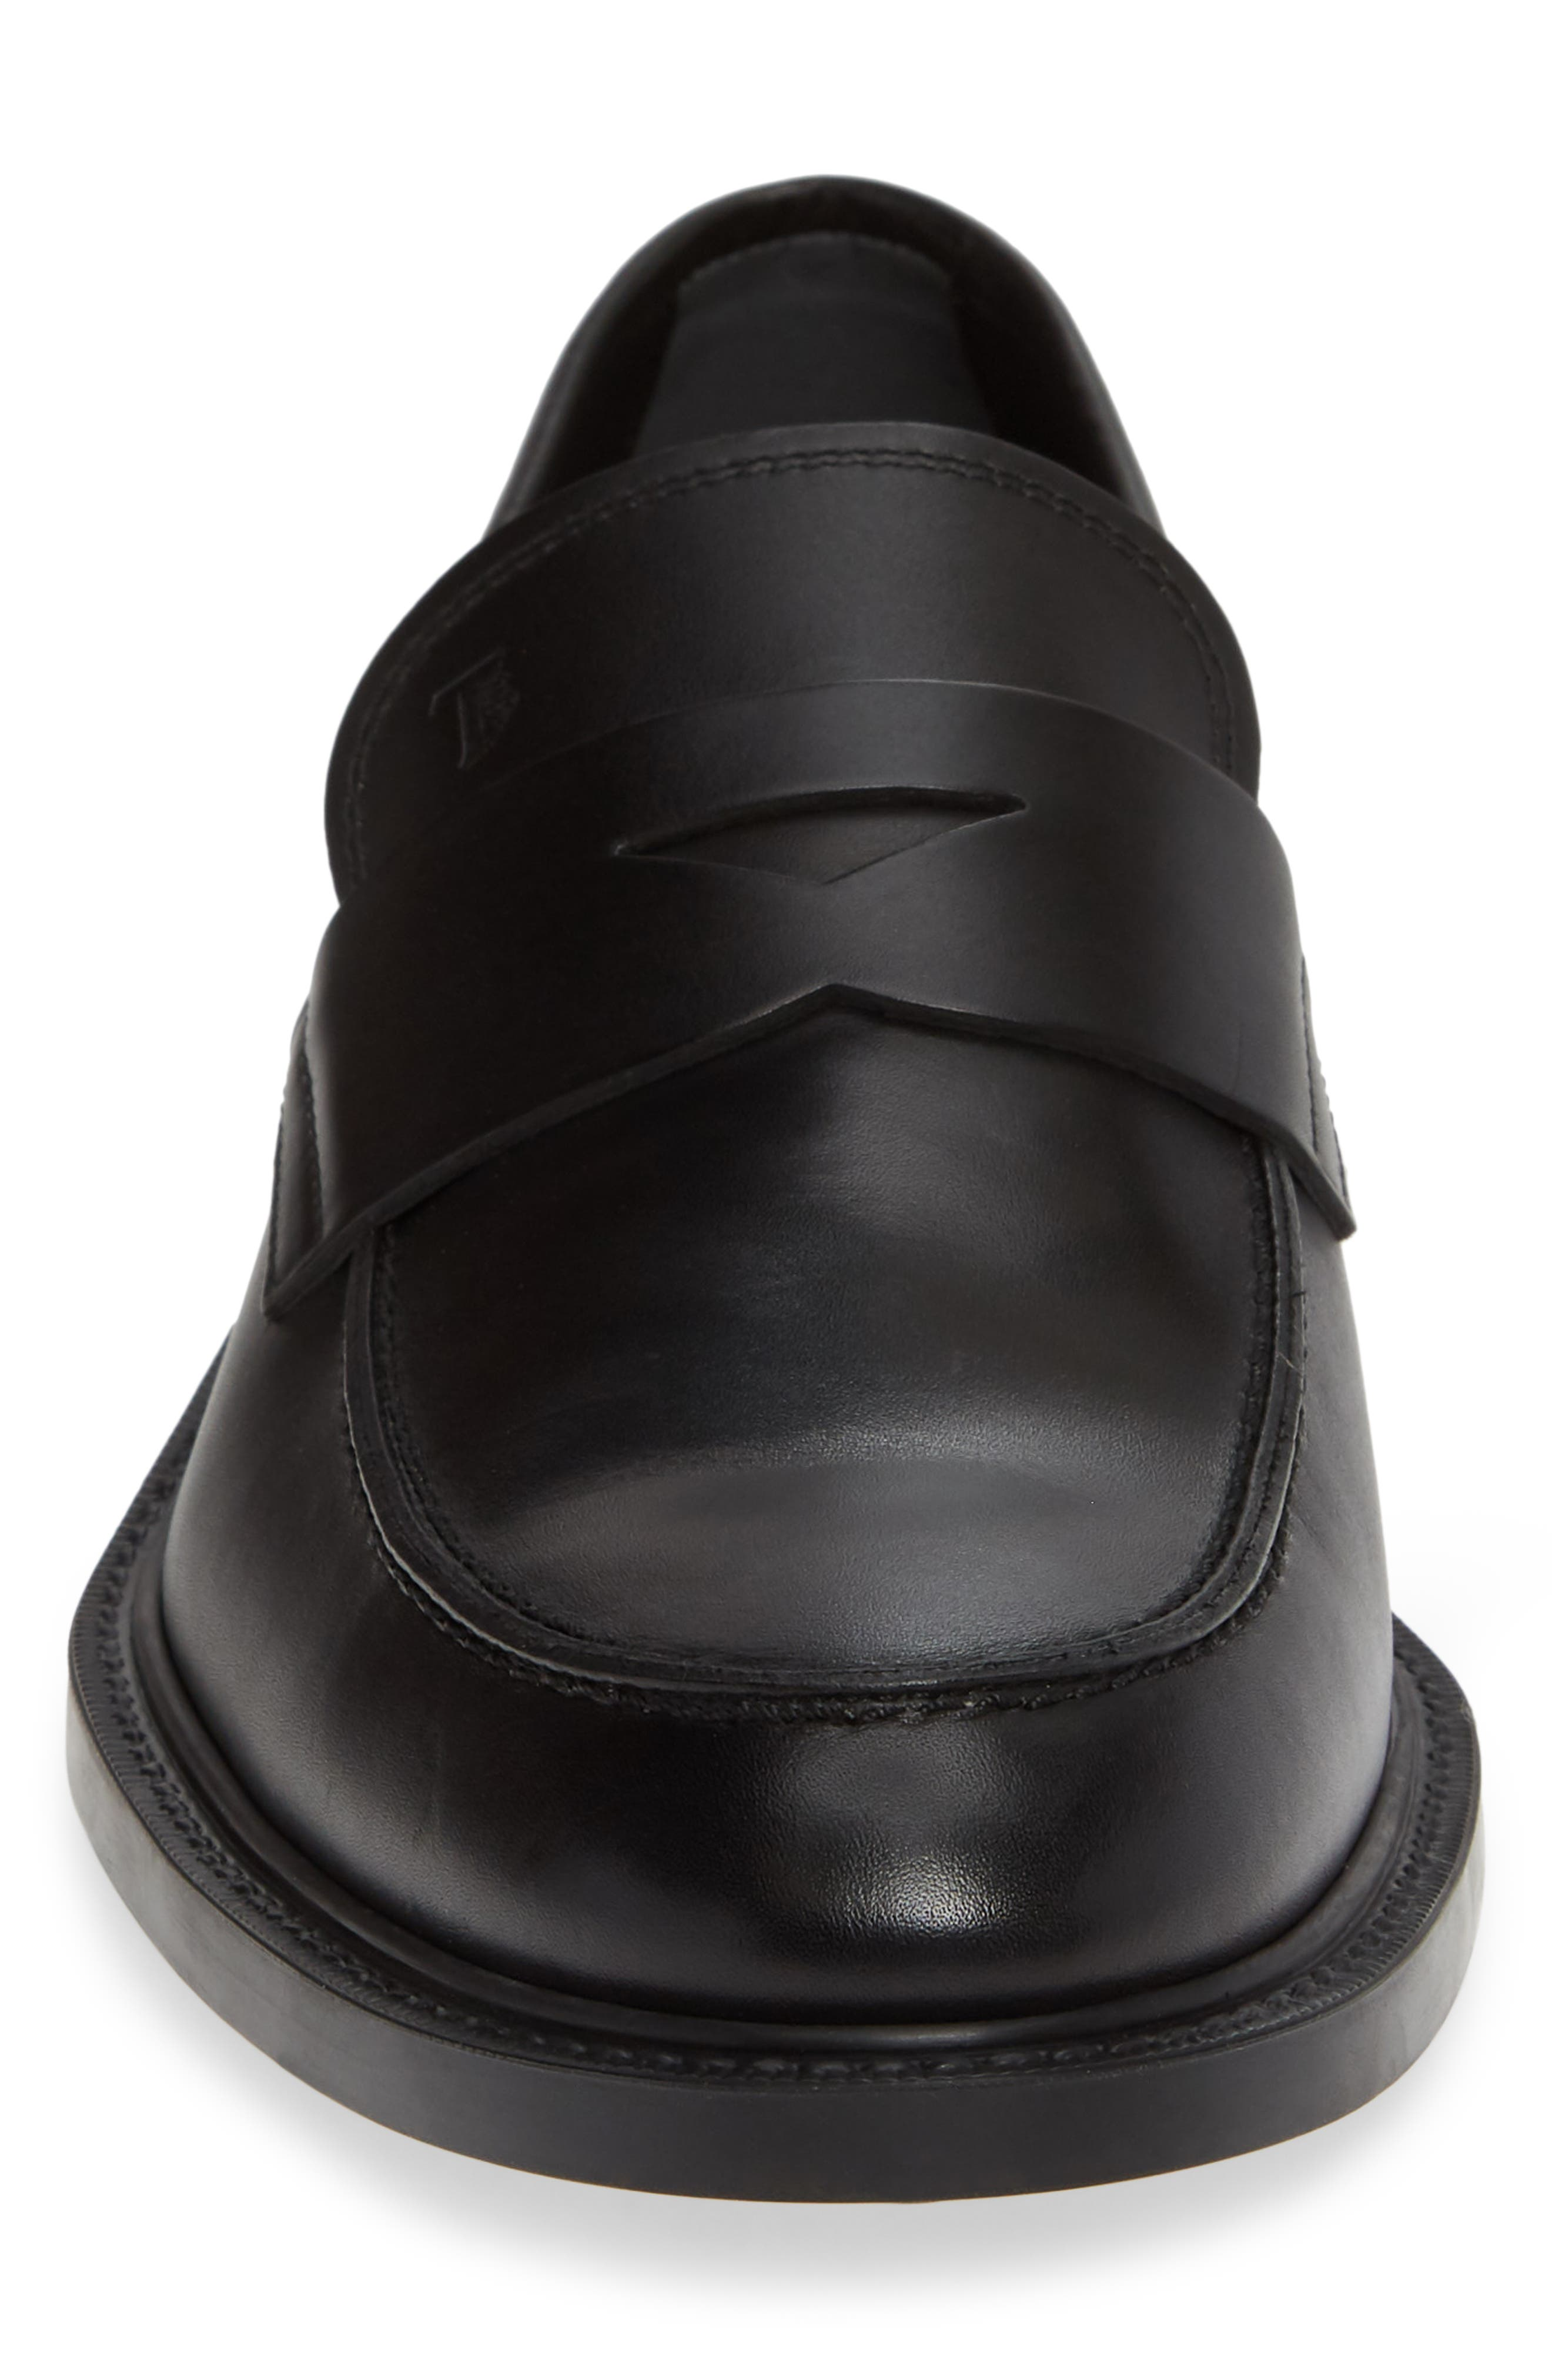 TOD'S, Mocassino Water Repellent Penny Loafer, Alternate thumbnail 4, color, BLACK/ BLACK